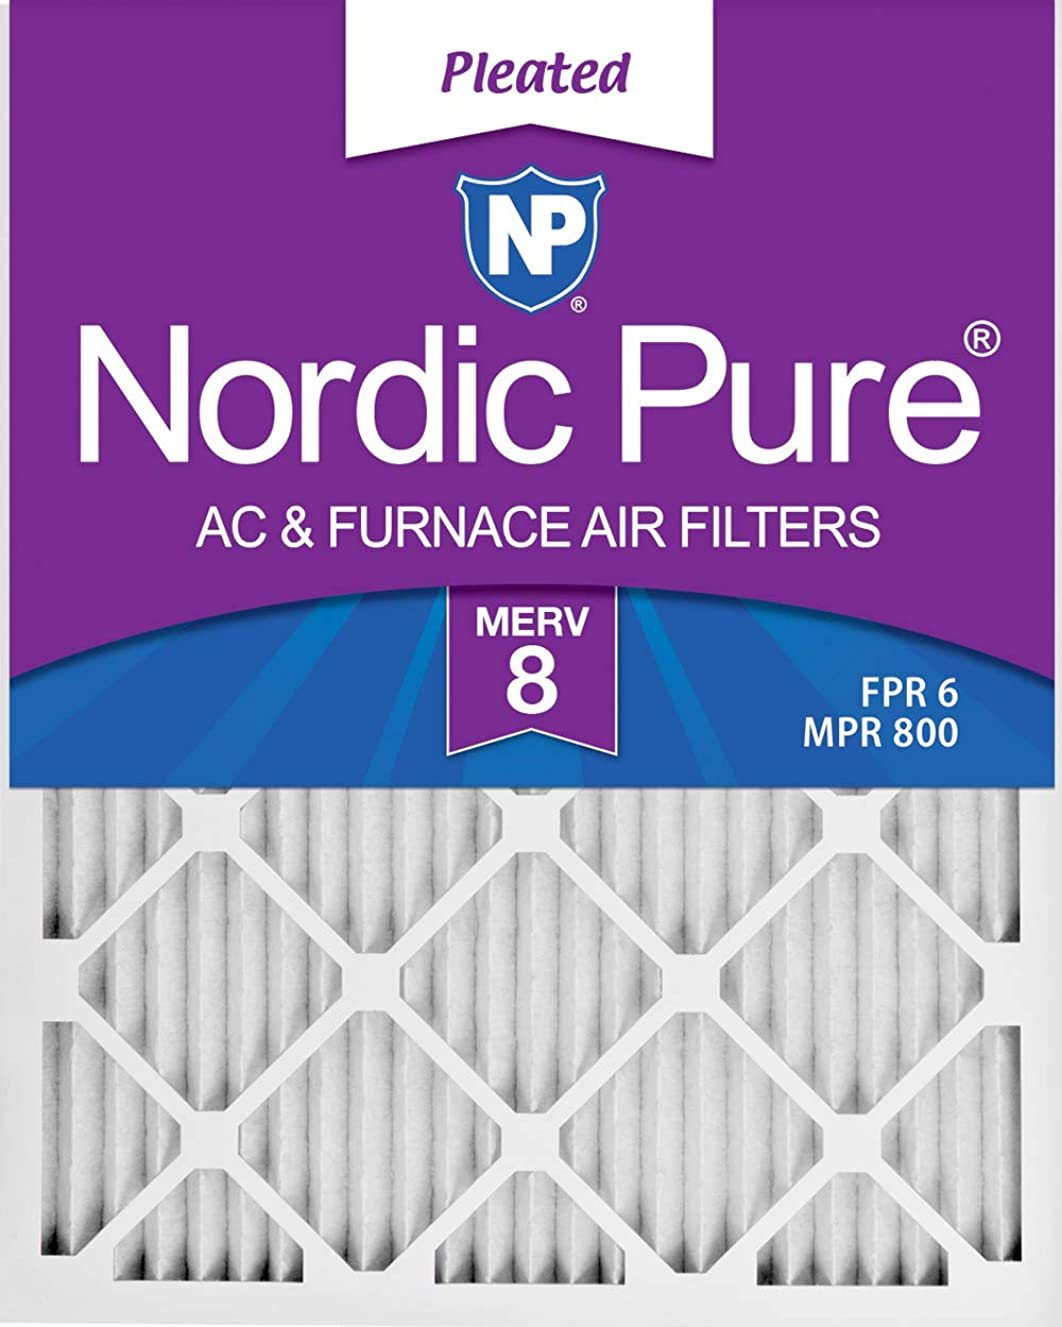 Nordic Pure 20x24x1 MERV 8 Pleated AC Furnace Air Filters 1 Pack